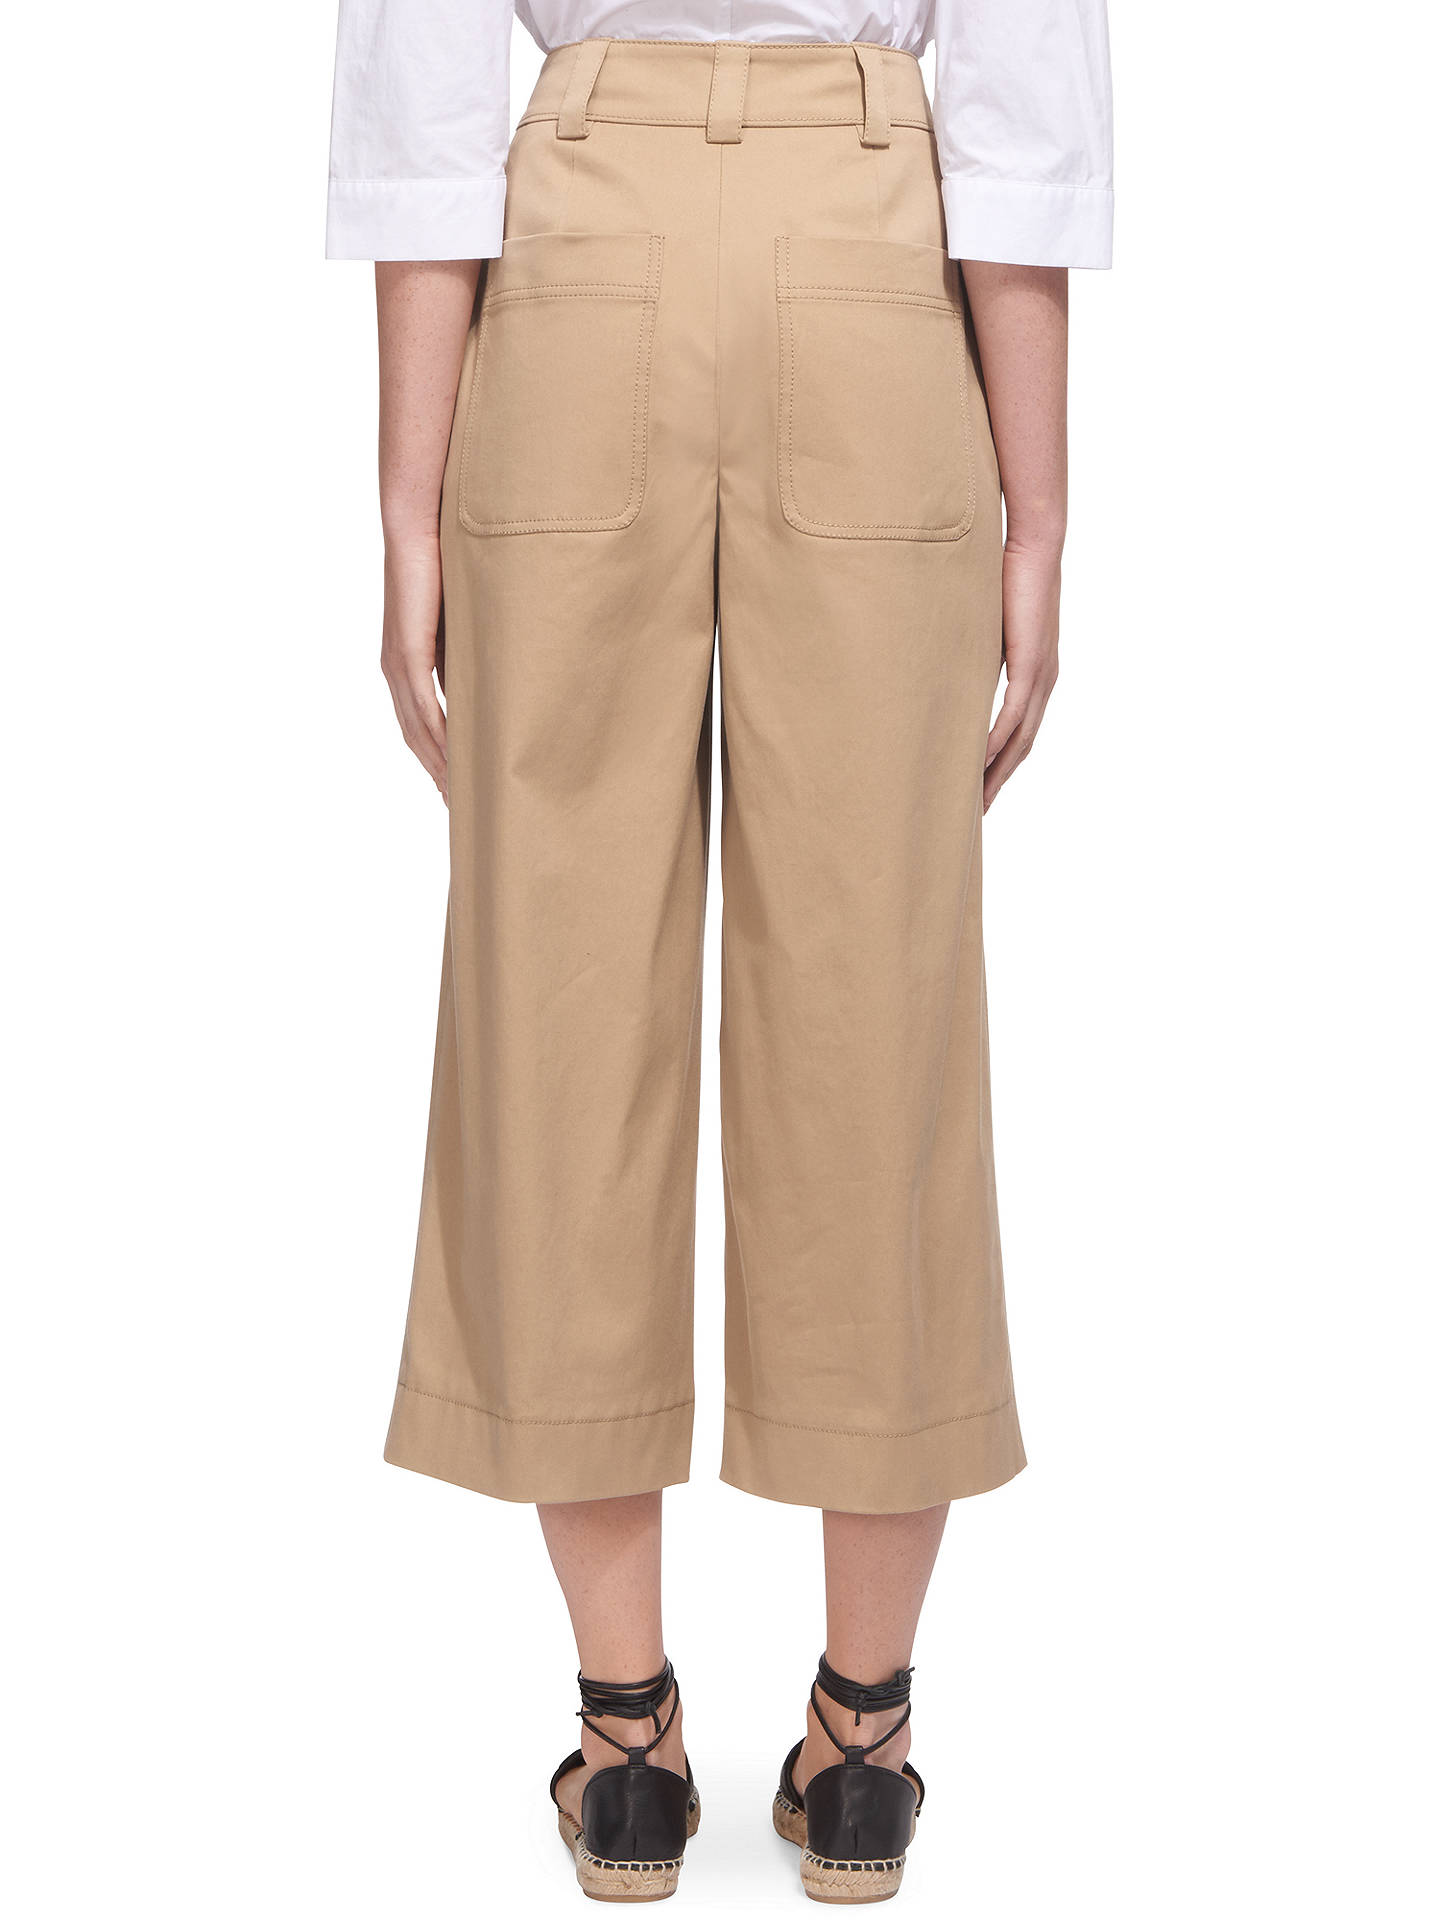 BuyWhistles Cotton Wide Leg Trousers, Beige, 8 Online at johnlewis.com